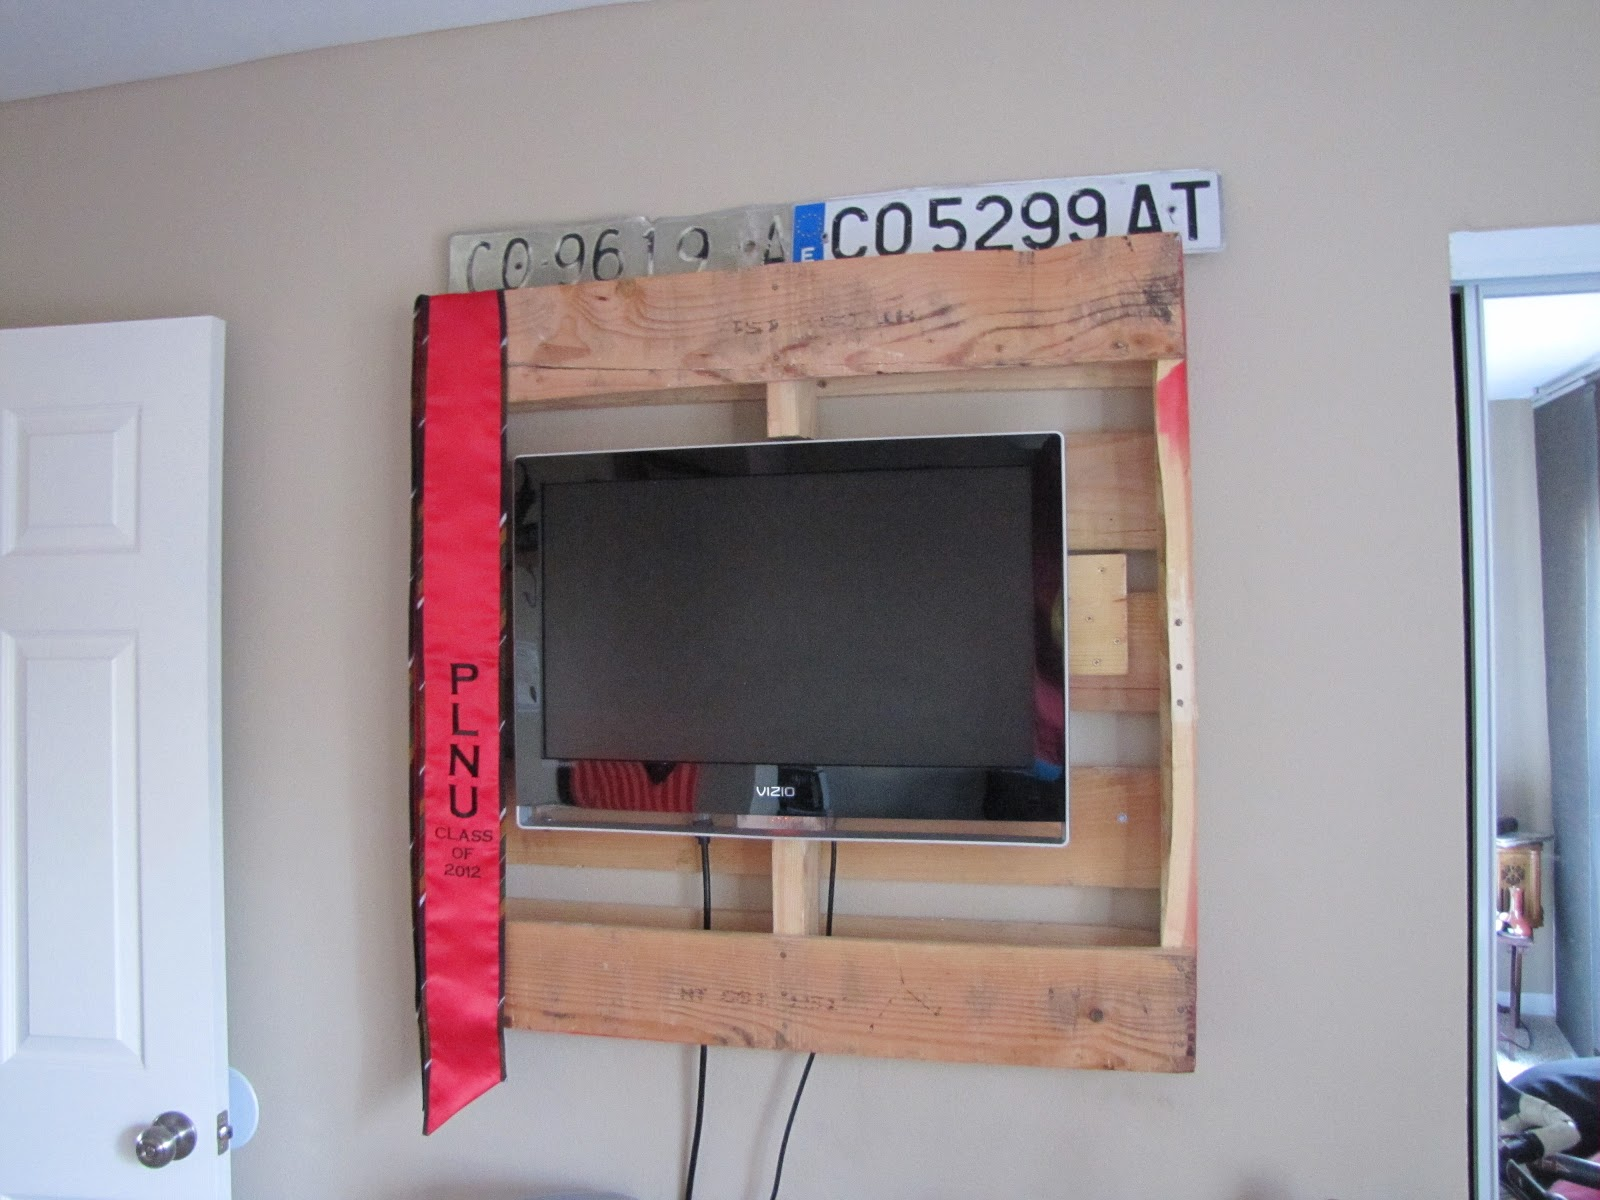 Diy Wall Panel For Tv - Do It Your Self (DIY)